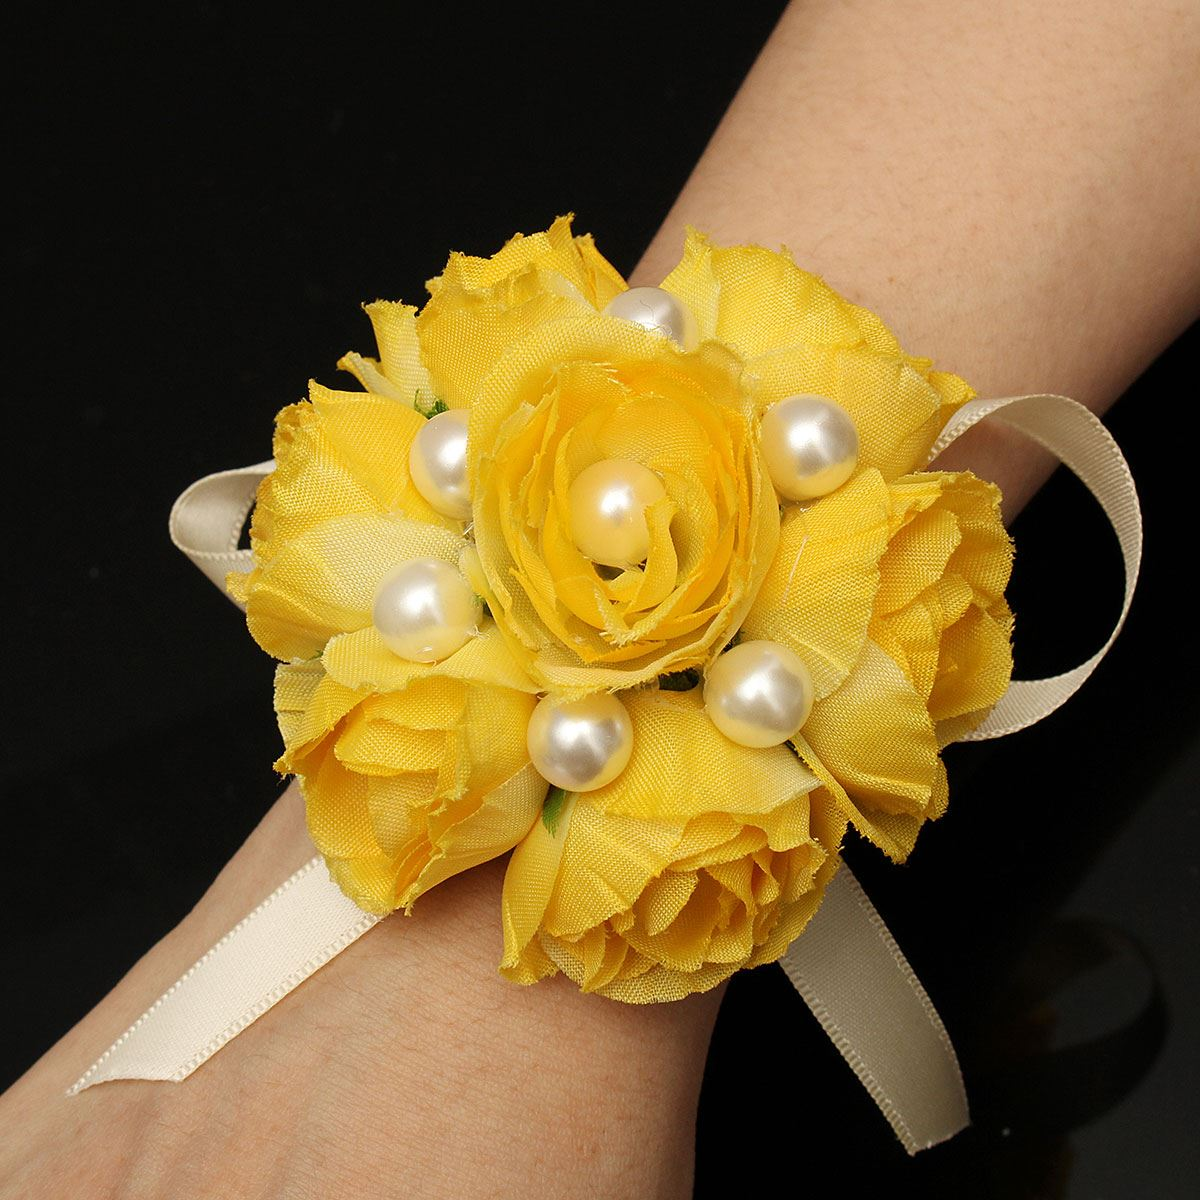 Cloth wrist bridesmaid bridal corsage hand artificial for Aana decoration wedding accessories